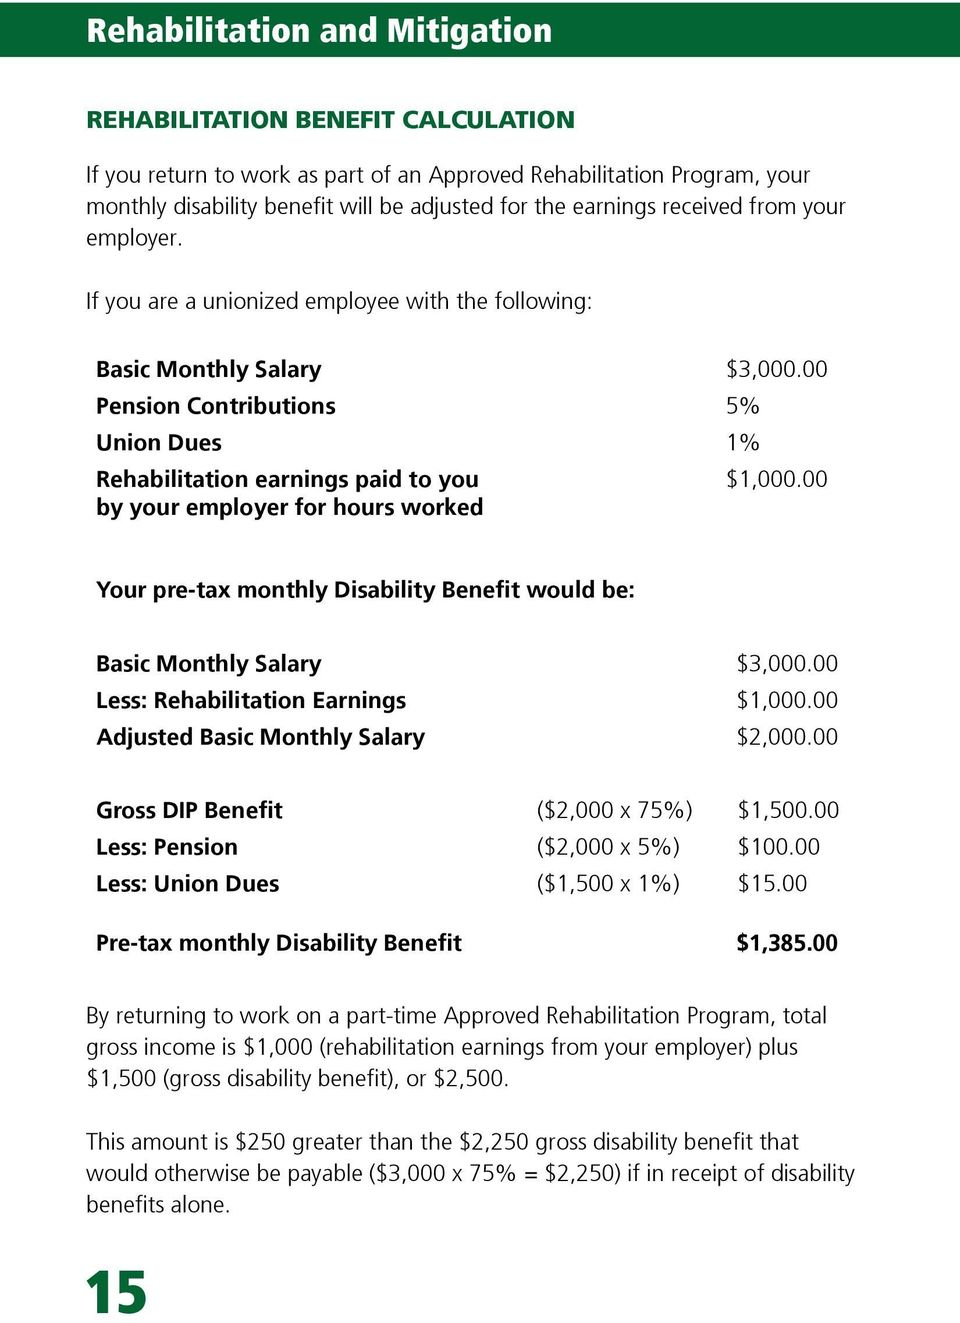 00 Pension Contributions 5% Union Dues 1% Rehabilitation earnings paid to you by your employer for hours worked $1,000.00 Your pre-tax monthly Disability Benefit would be: Basic Monthly Salary $3,000.